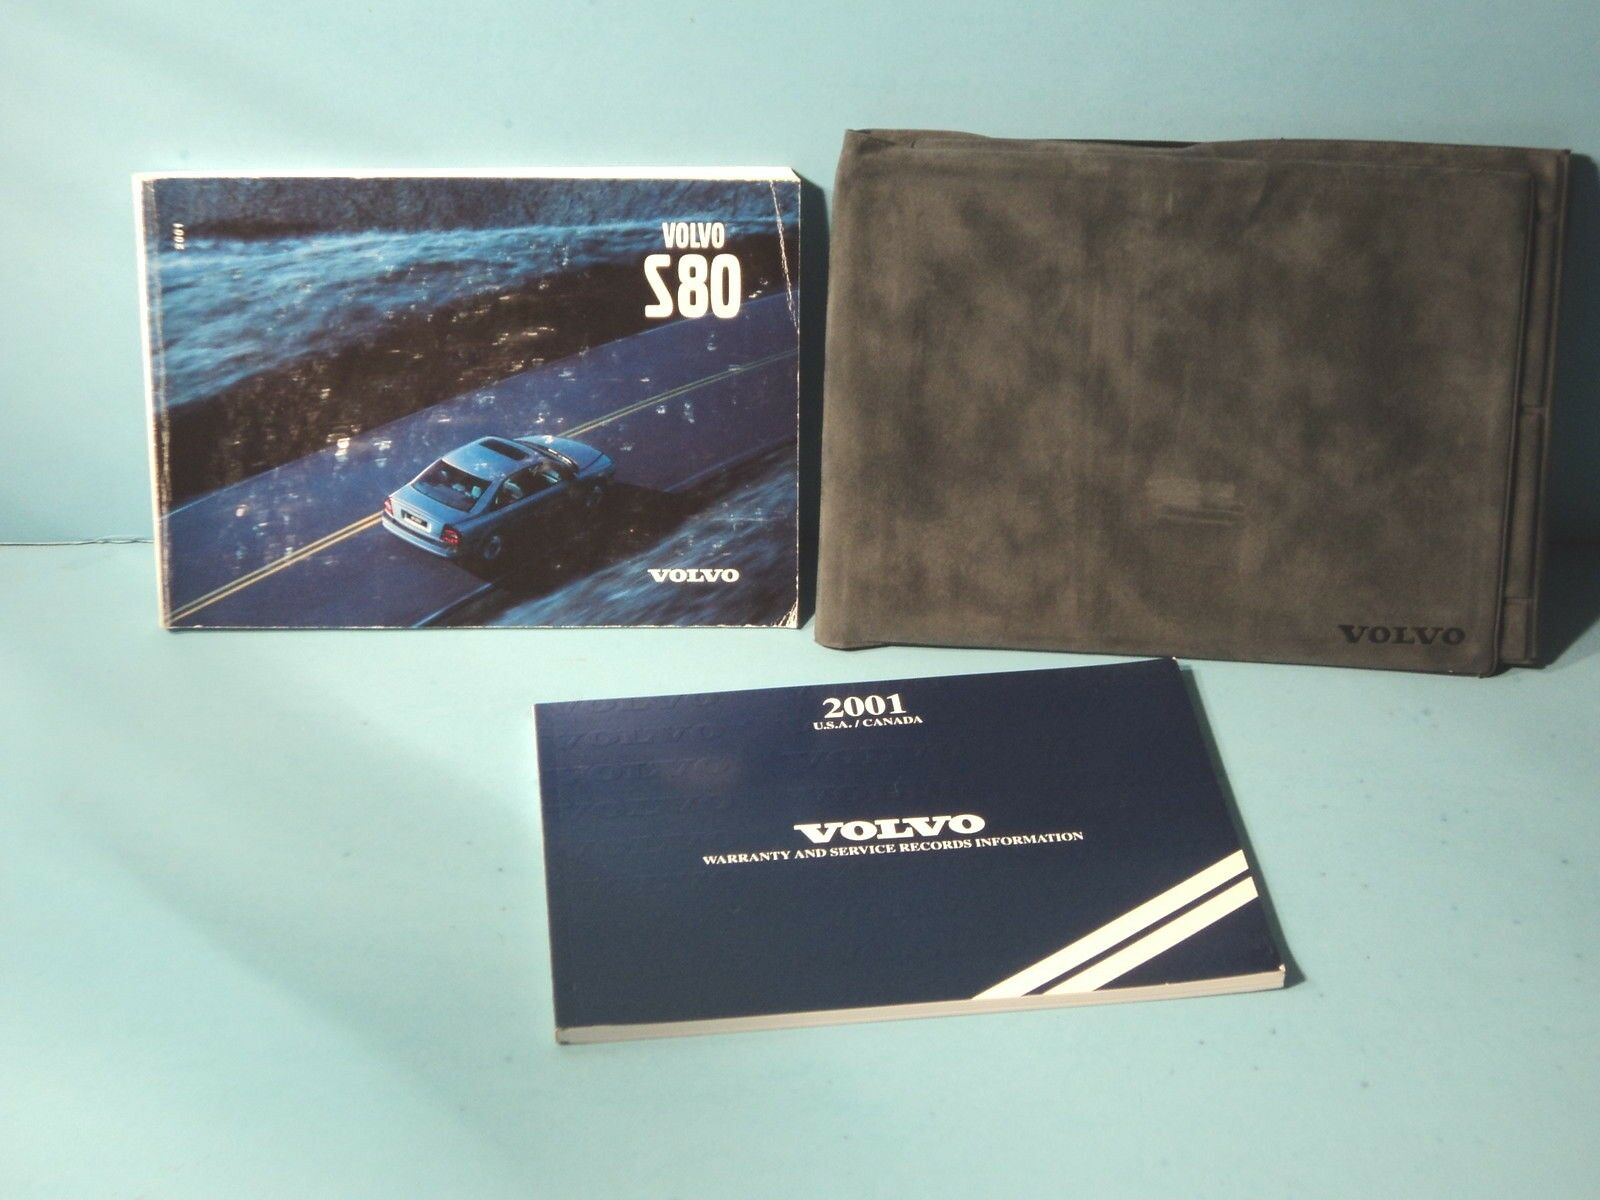 01 2001 Volvo S80 owners manual 1 of 1FREE Shipping See More